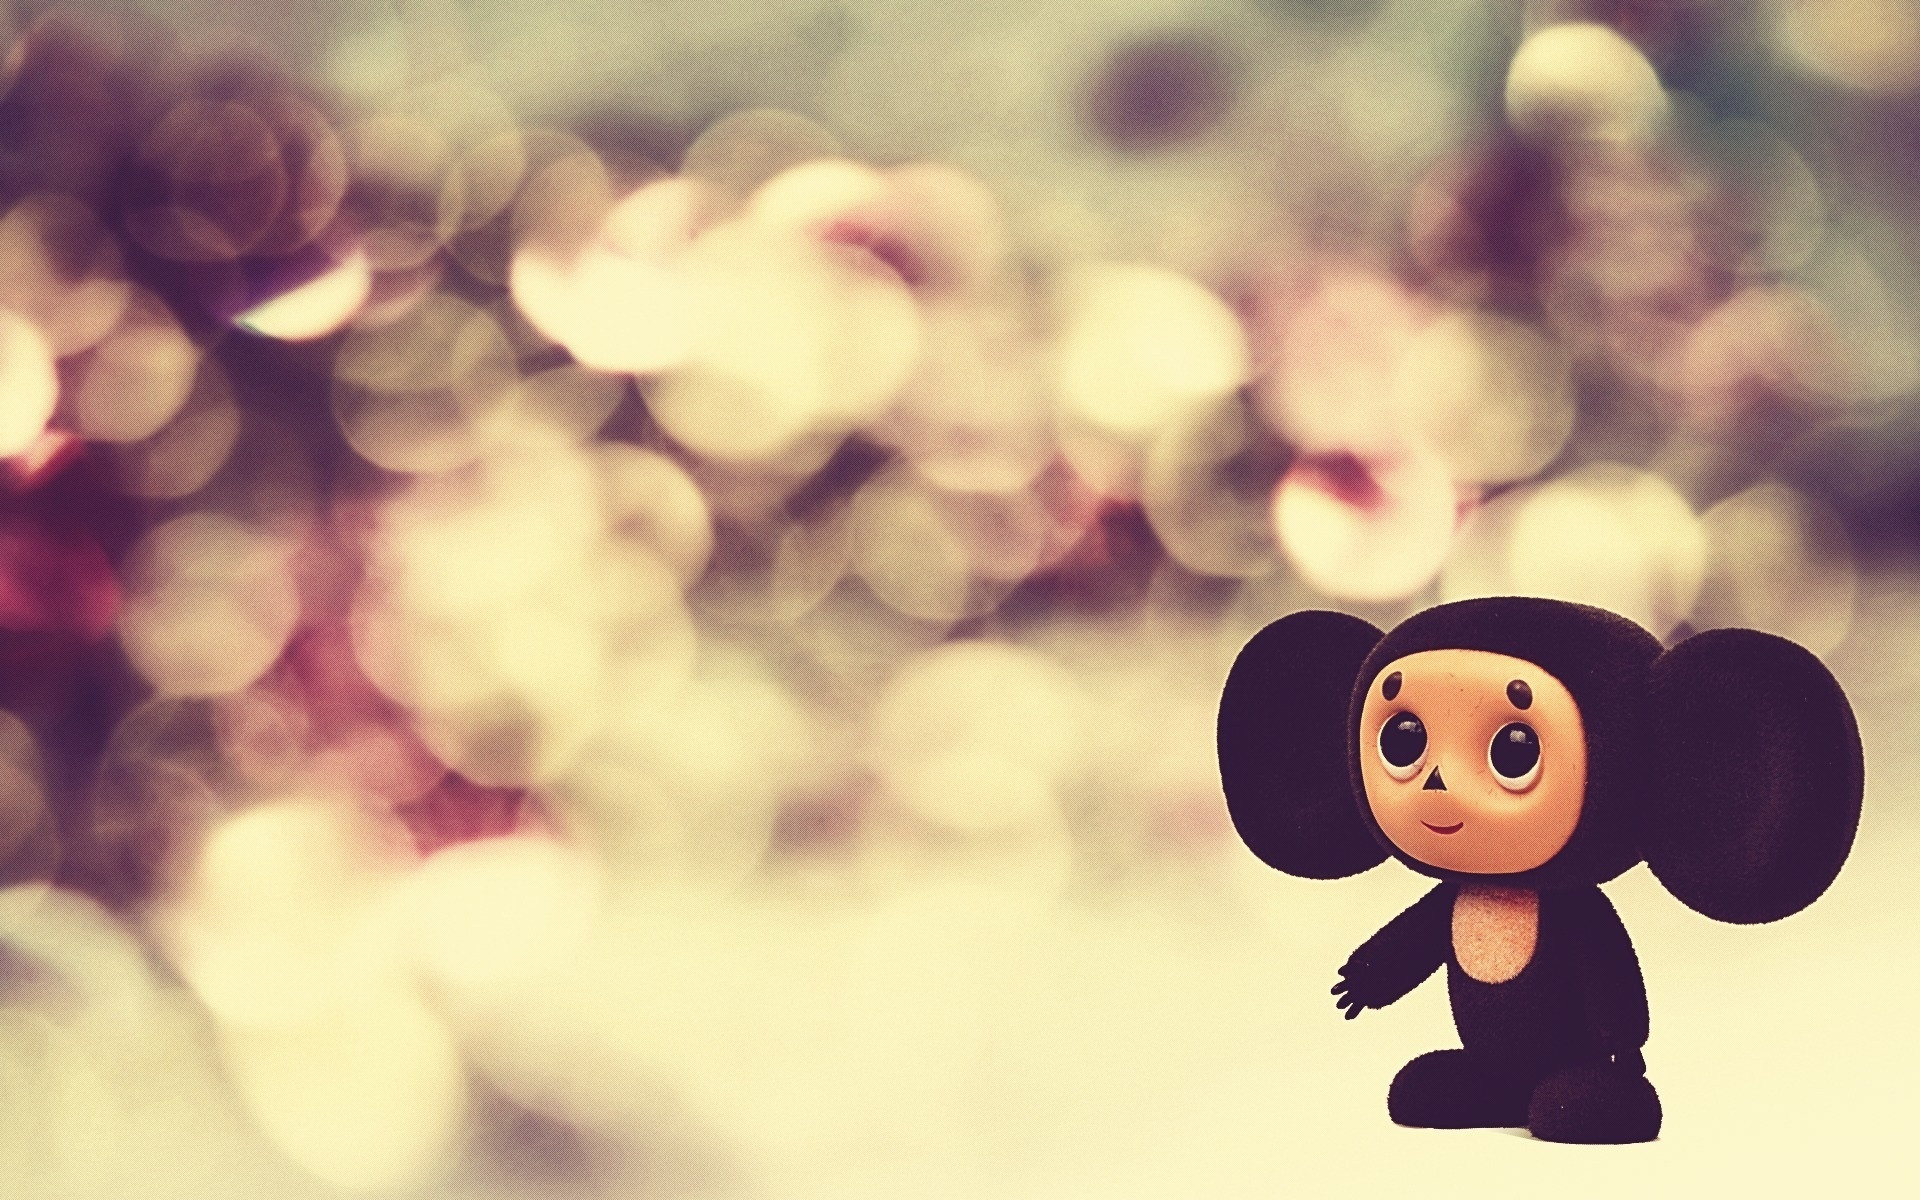 1920x1200 40 best Rasim Wallpaper images on Pinterest | Wallpaper for mobile ... monkey  wallpaper Cute ...